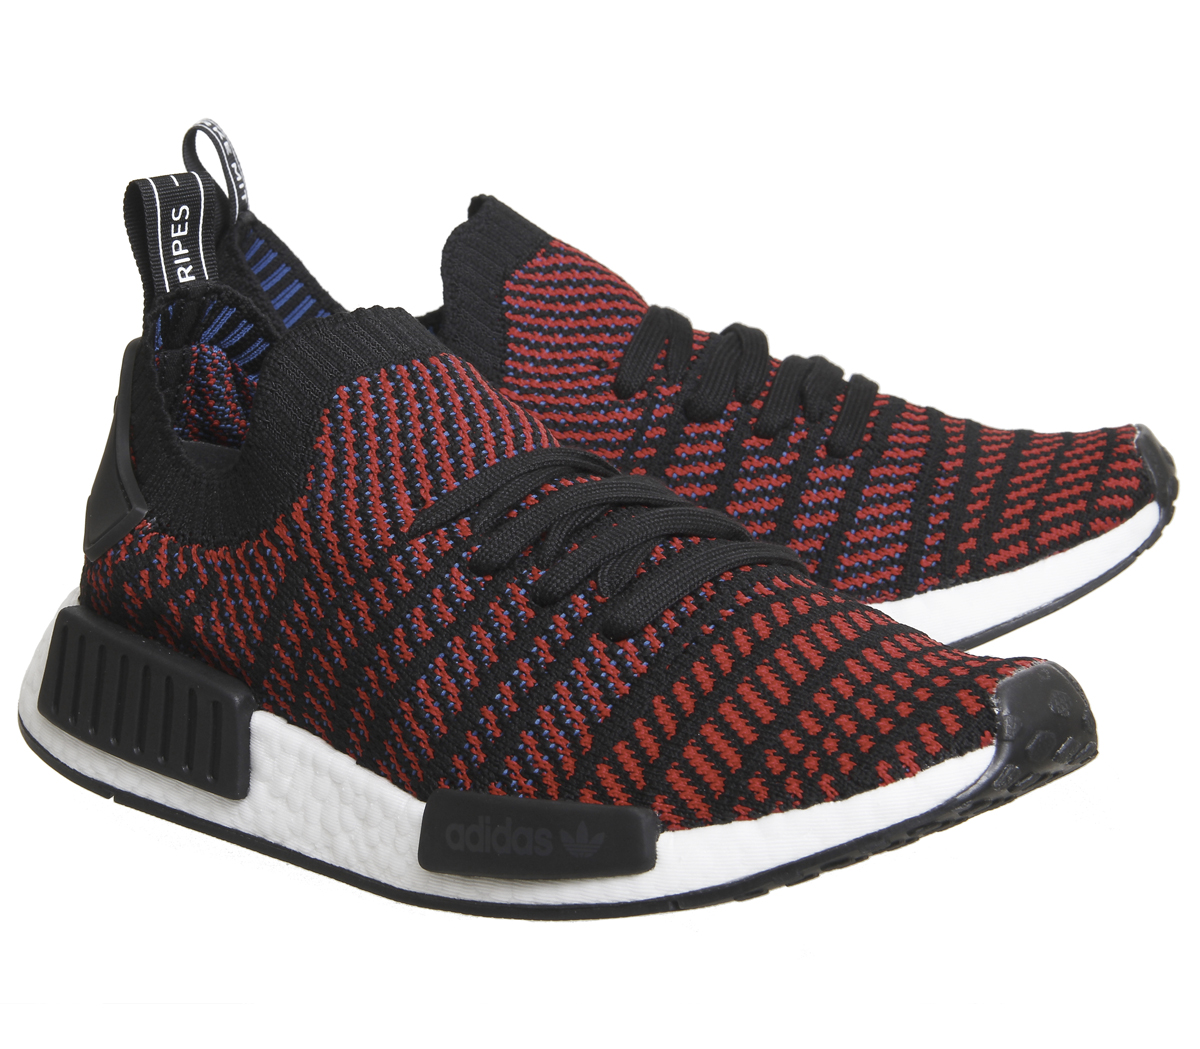 40bc82e4863 Adidas Nmd R1 Prime Knit Core Black Red Trainers Shoes